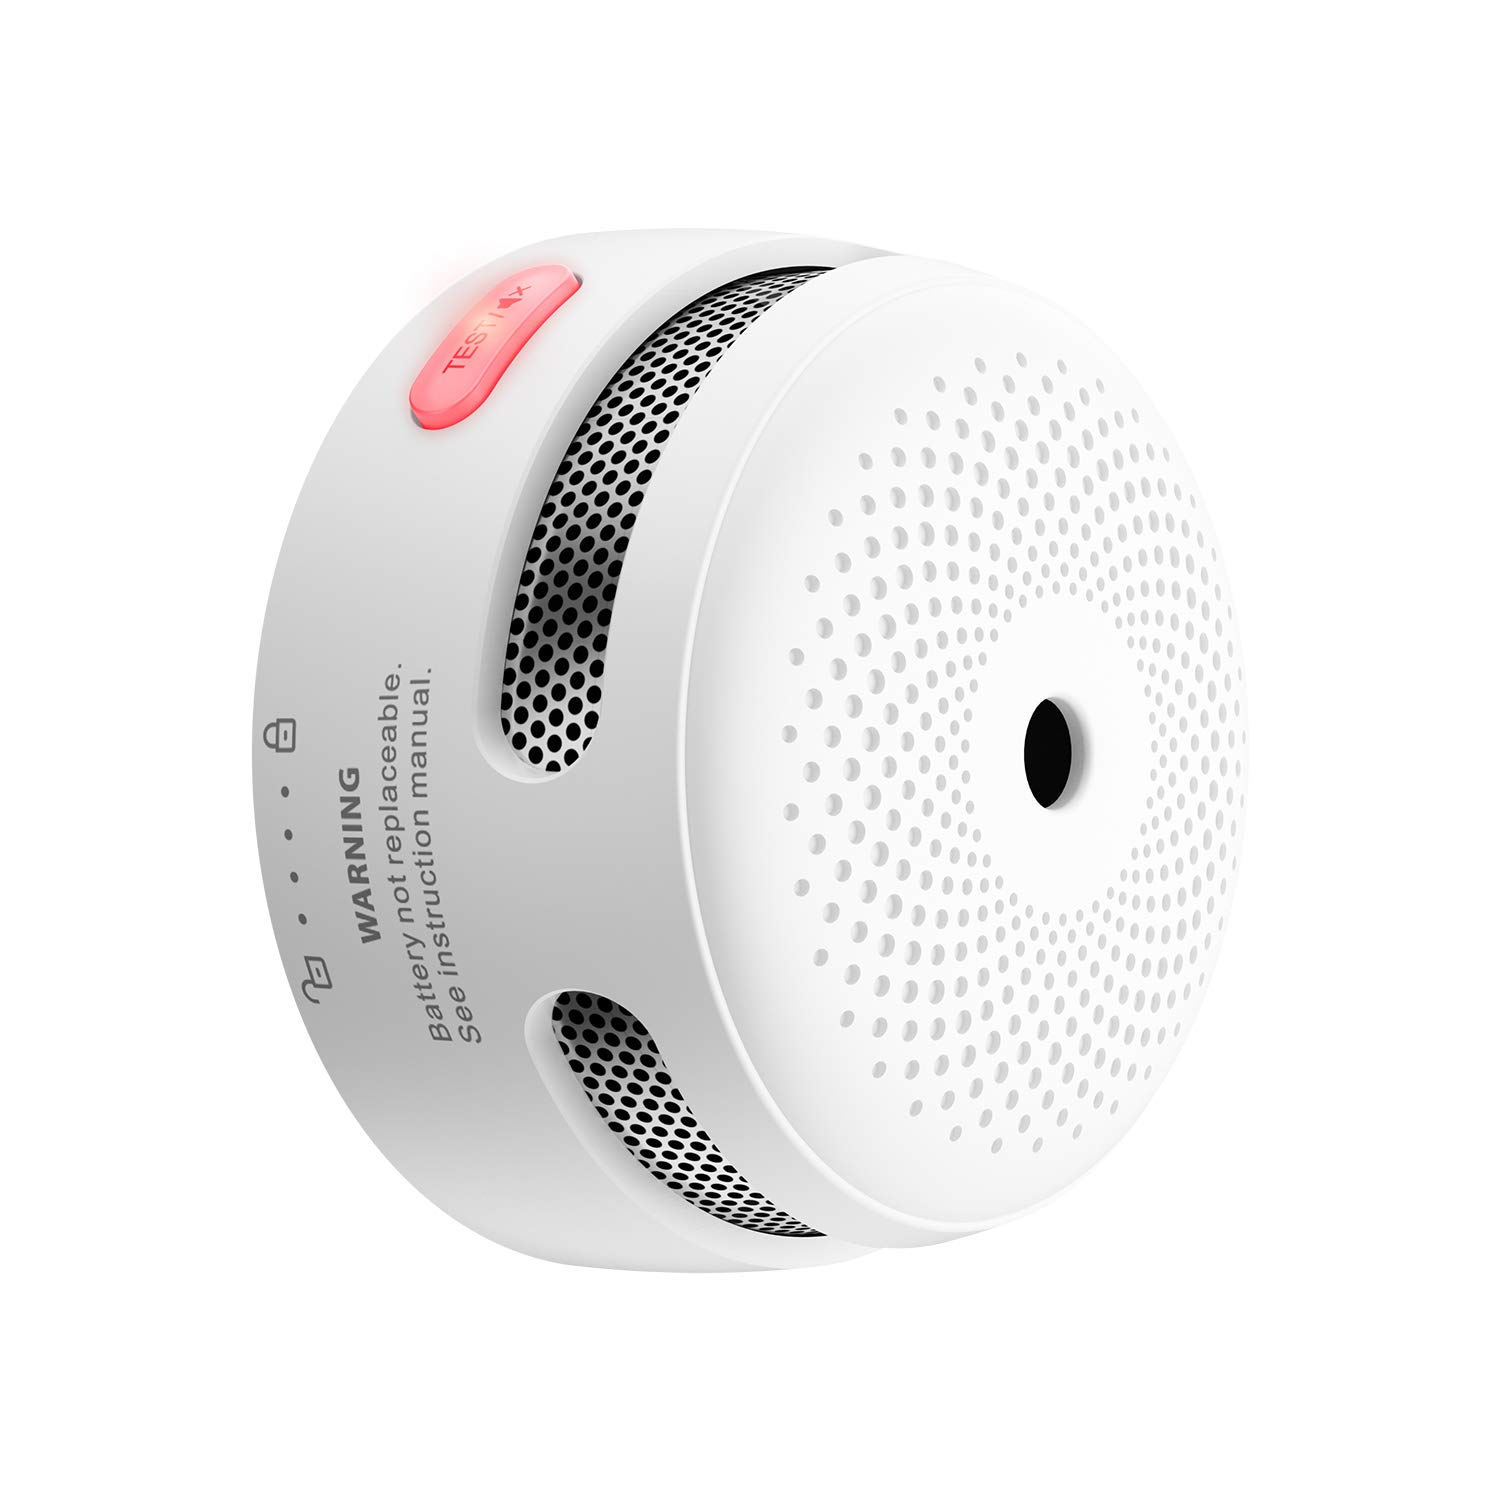 X-Sense Mini Smoke Alarm 10-Year Battery Fire Alarm Smoke Detector with LED